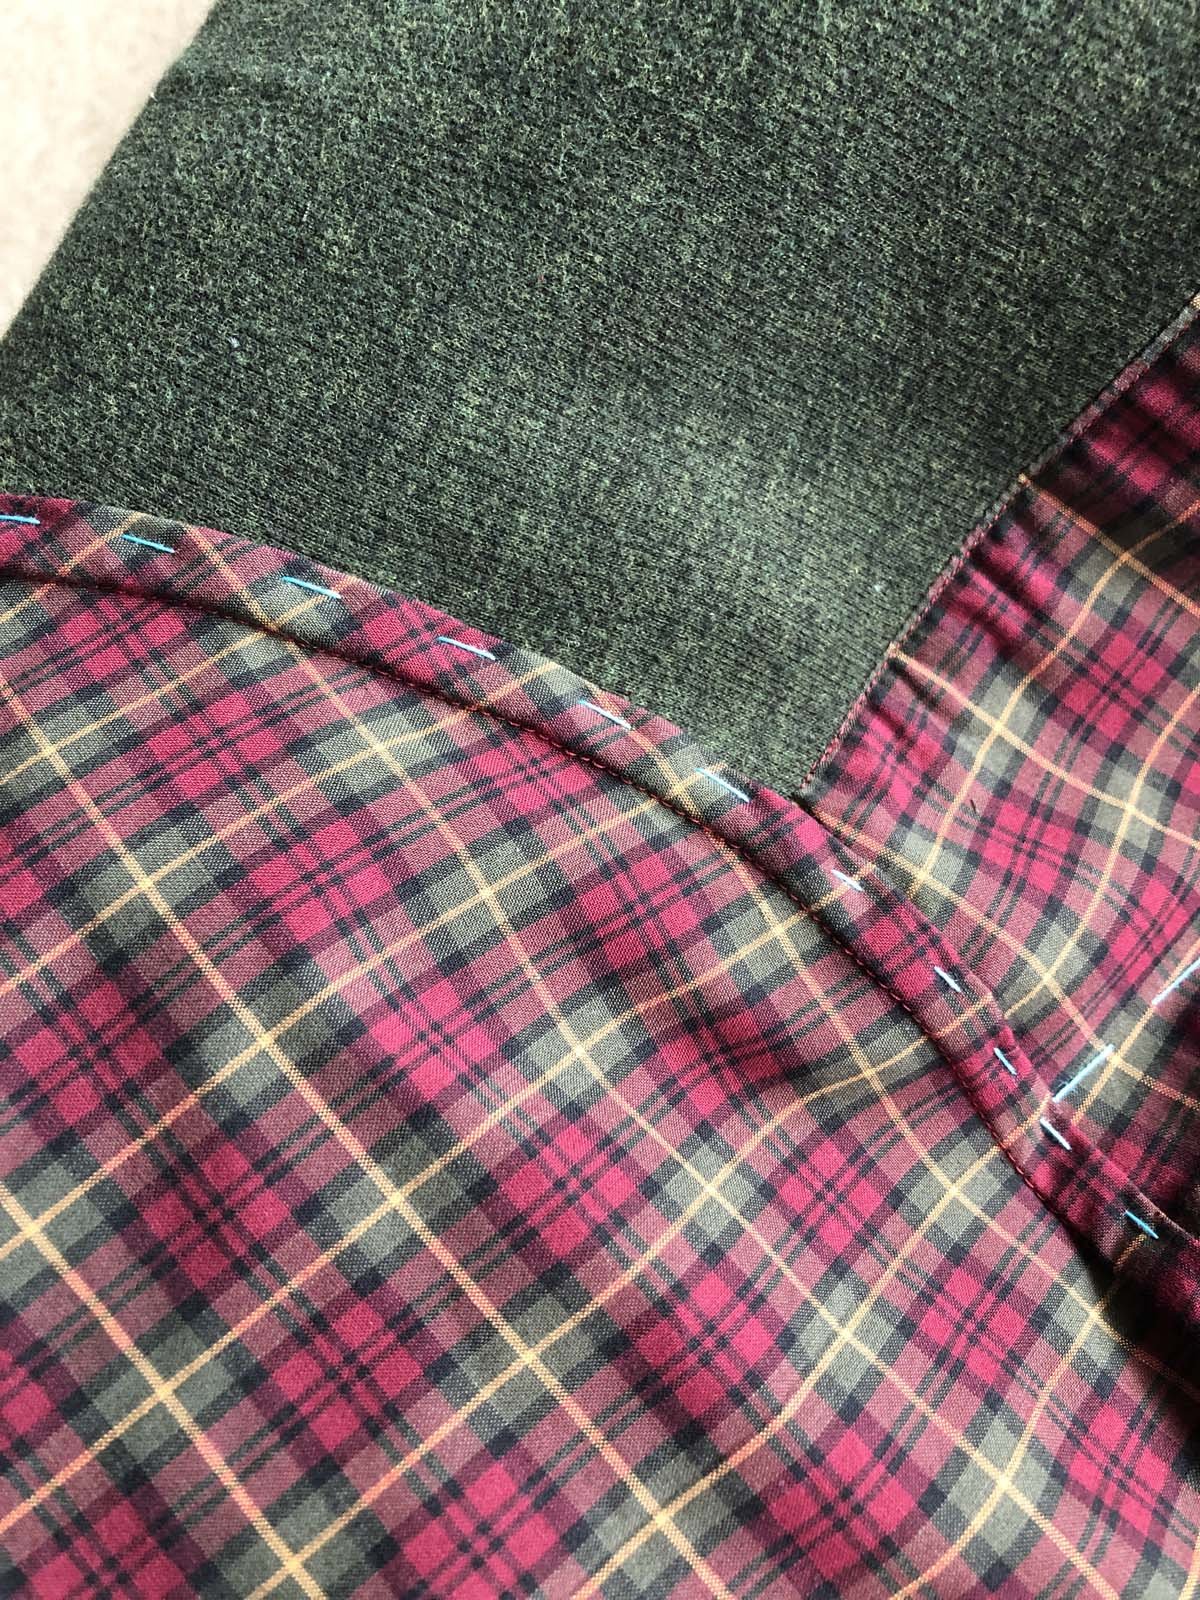 Hand-basted flat-felled seam at the sleeve cap